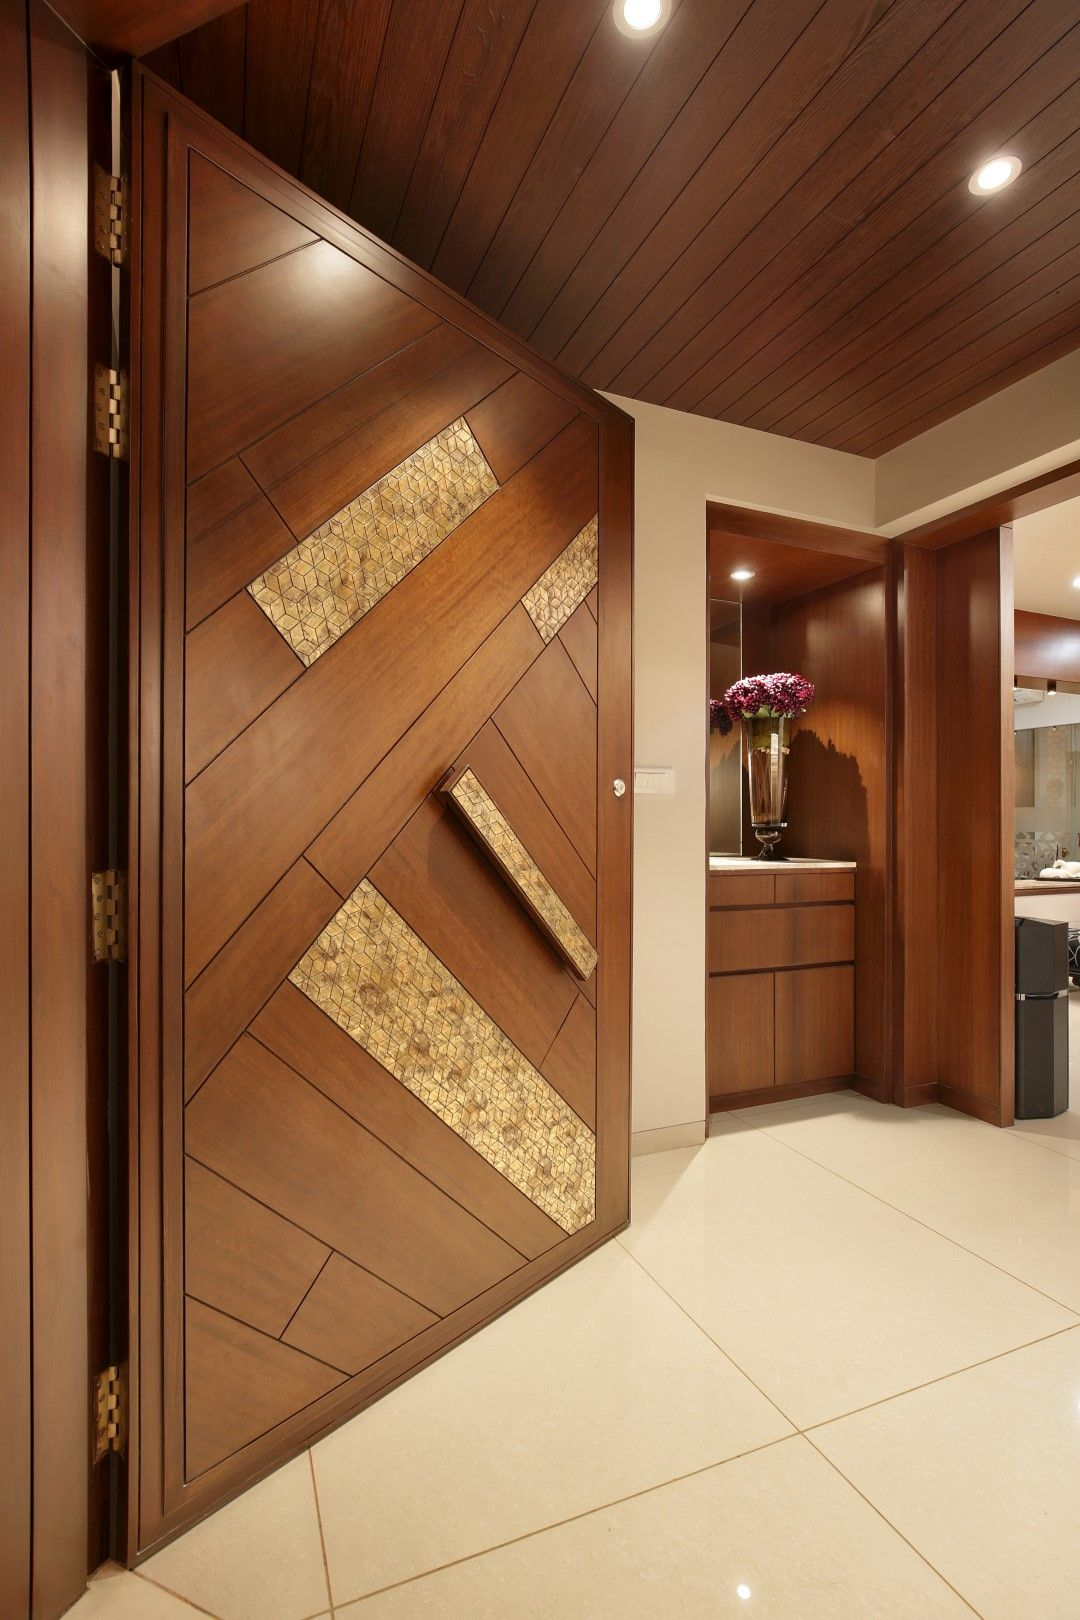 20 Best Modern Door Designs From Wood: 3 BHK Flat Interiors - The Oak Woods